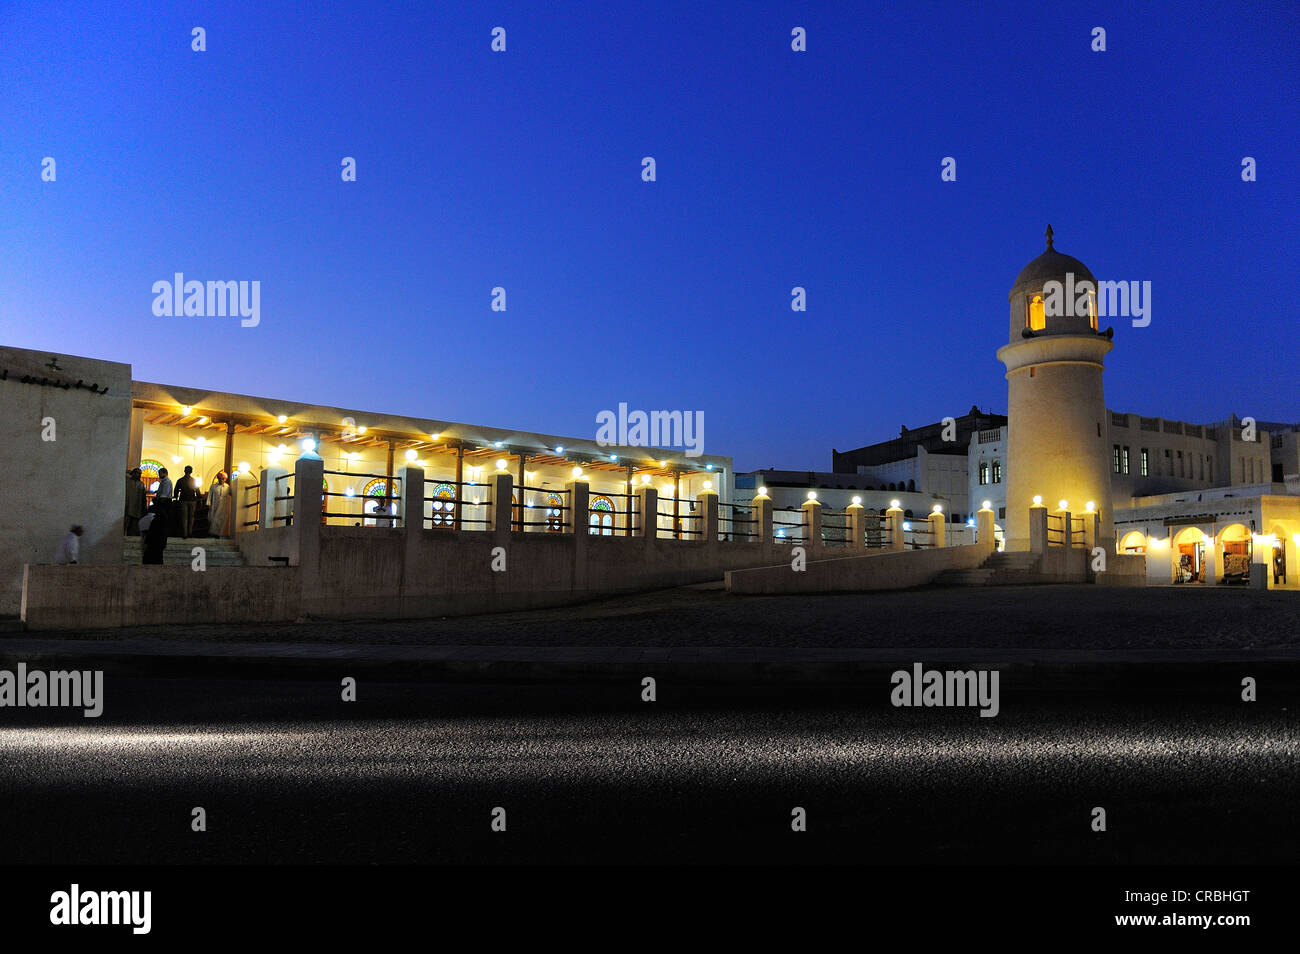 Mosque in the Souk Waqik, Doha, Qatar Stock Photo